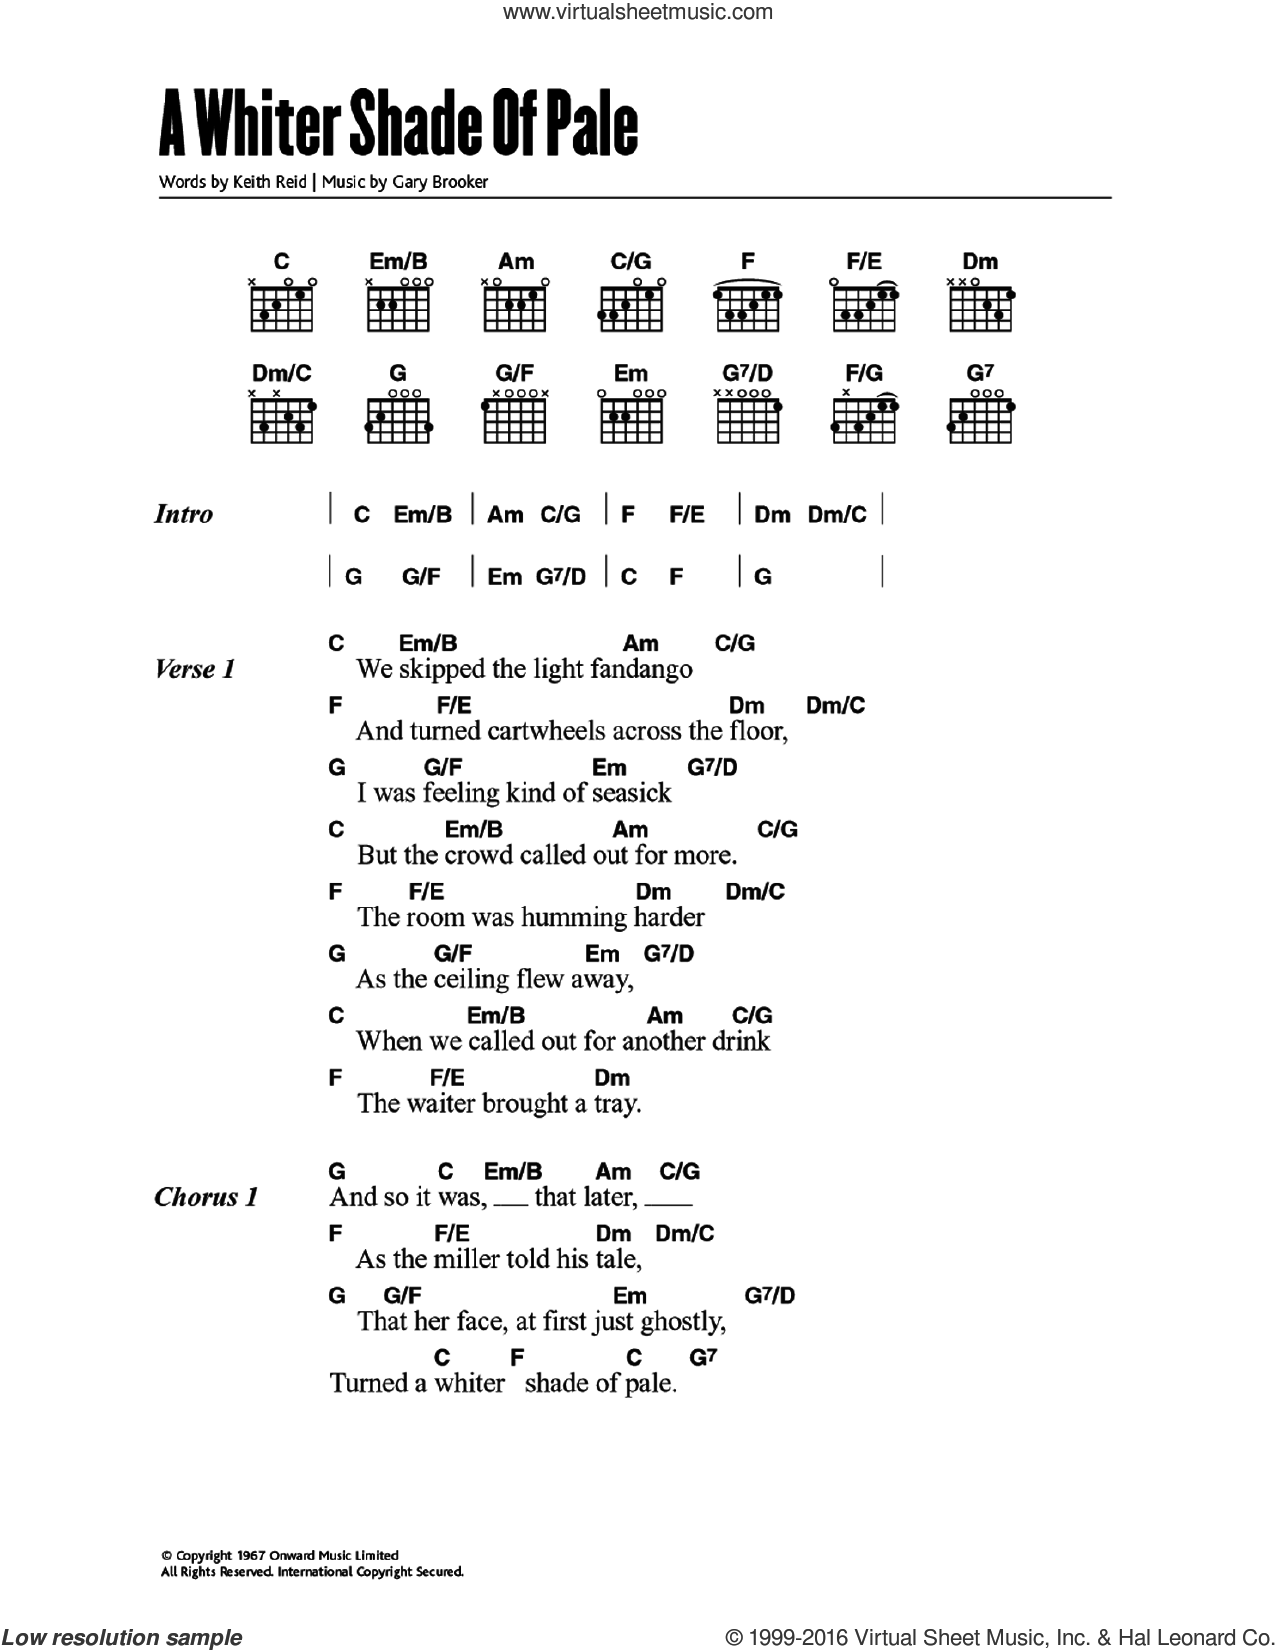 A Whiter Shade Of Pale sheet music for guitar (chords) by Matthew Fisher, Annie Lennox, Procol Harum, Gary Brooker and Keith Reid. Score Image Preview.